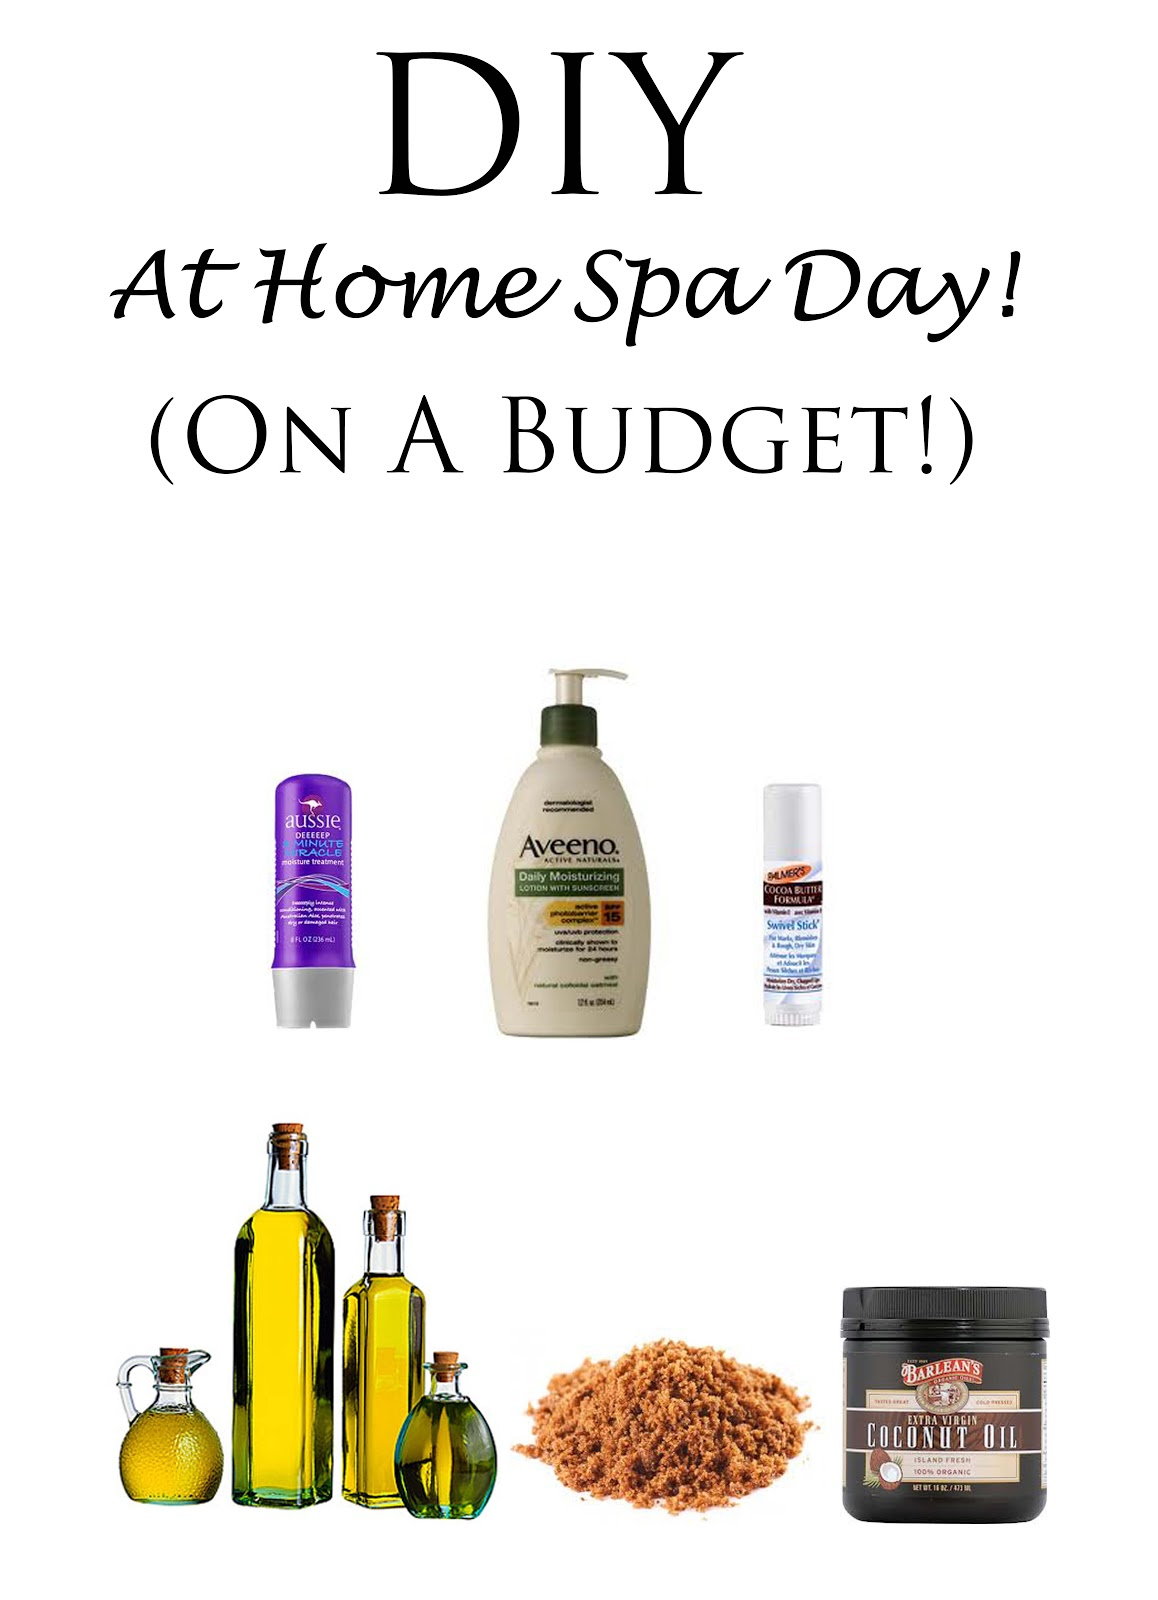 How To Have An At Home Spa Day...On a Budget! | Makeup & Beauty Tips ...